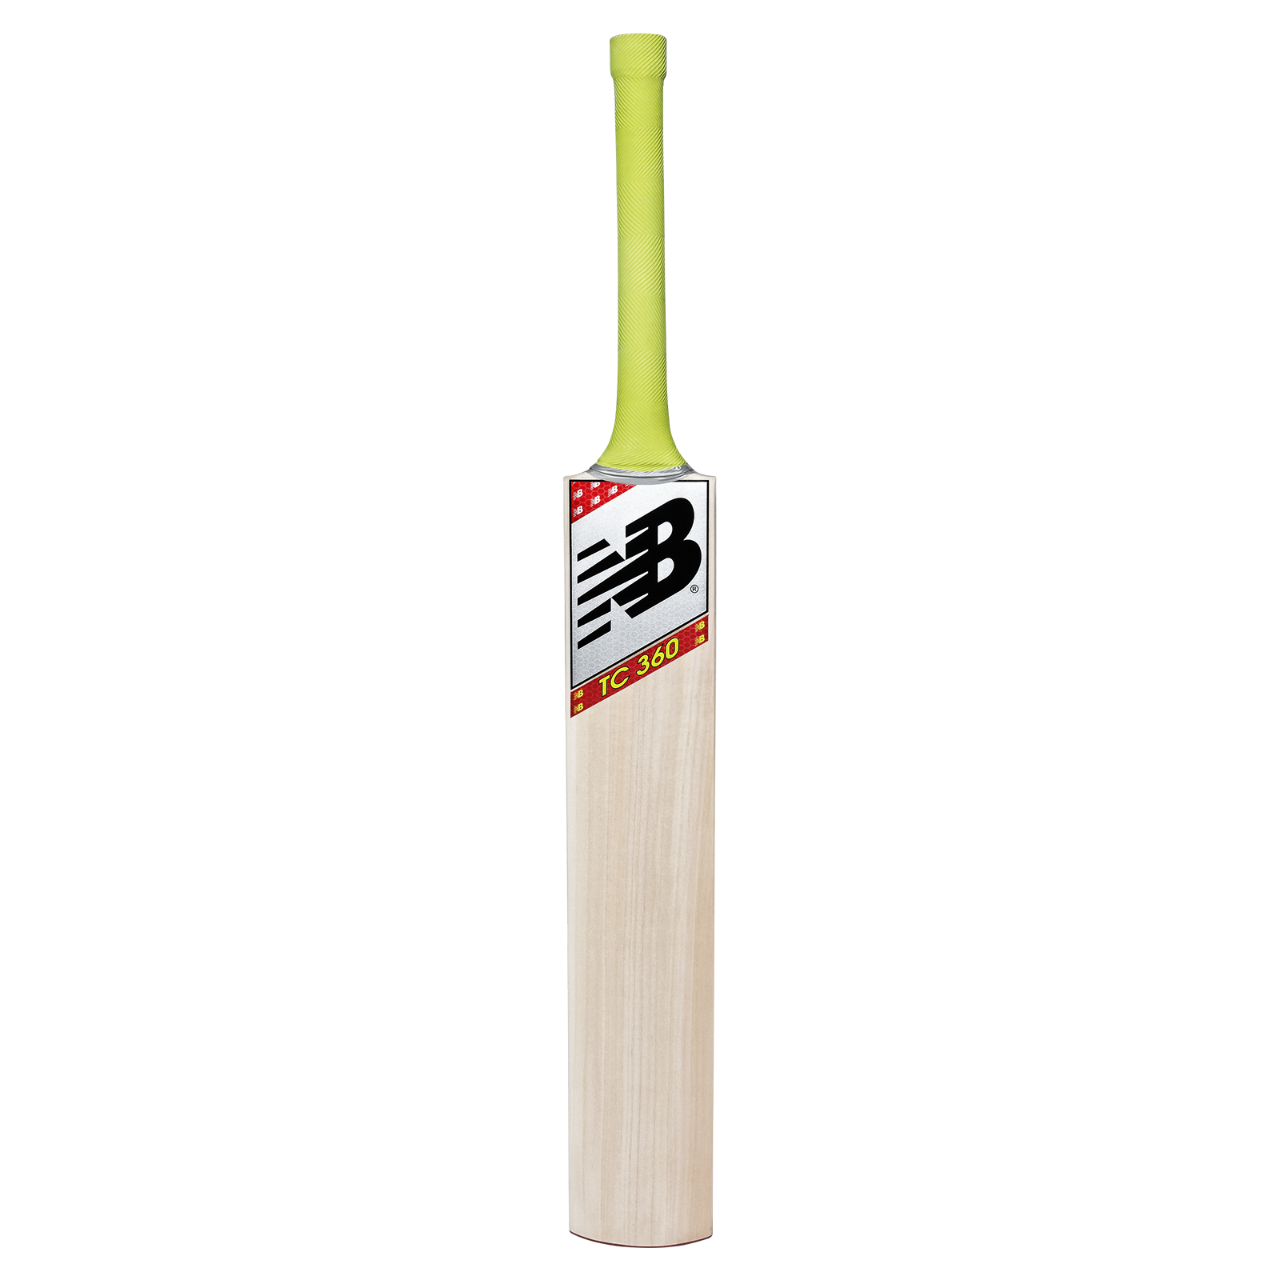 2021 New Balance TC 360 Junior Cricket Bat